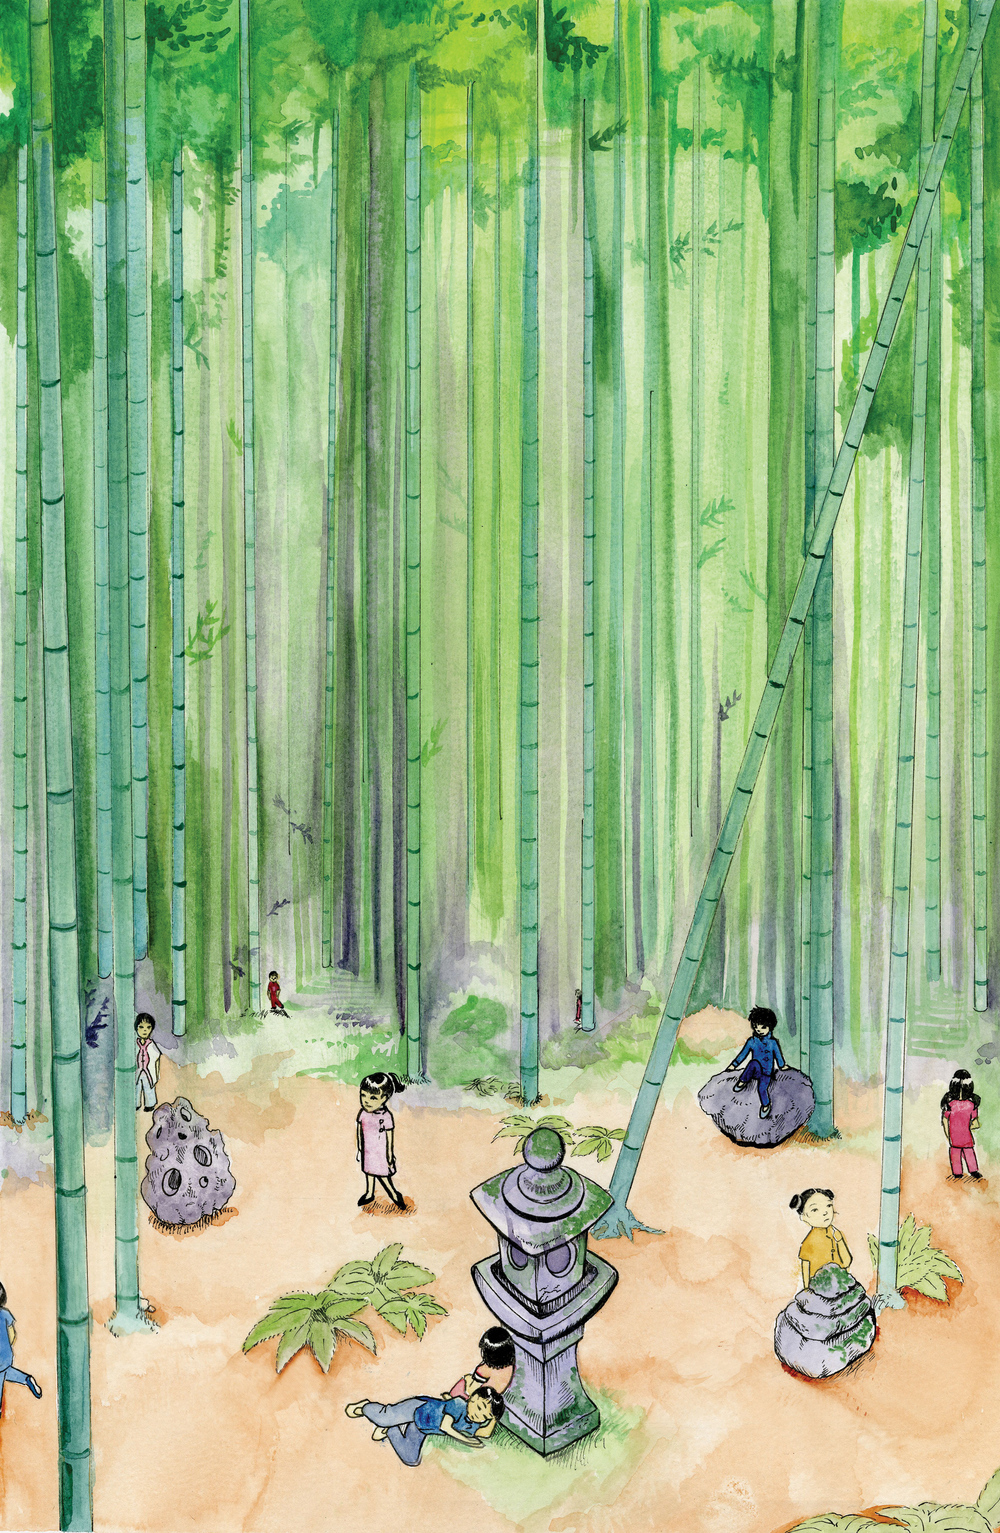 Wandering-In-The-Bamboo-Forest2.jpg